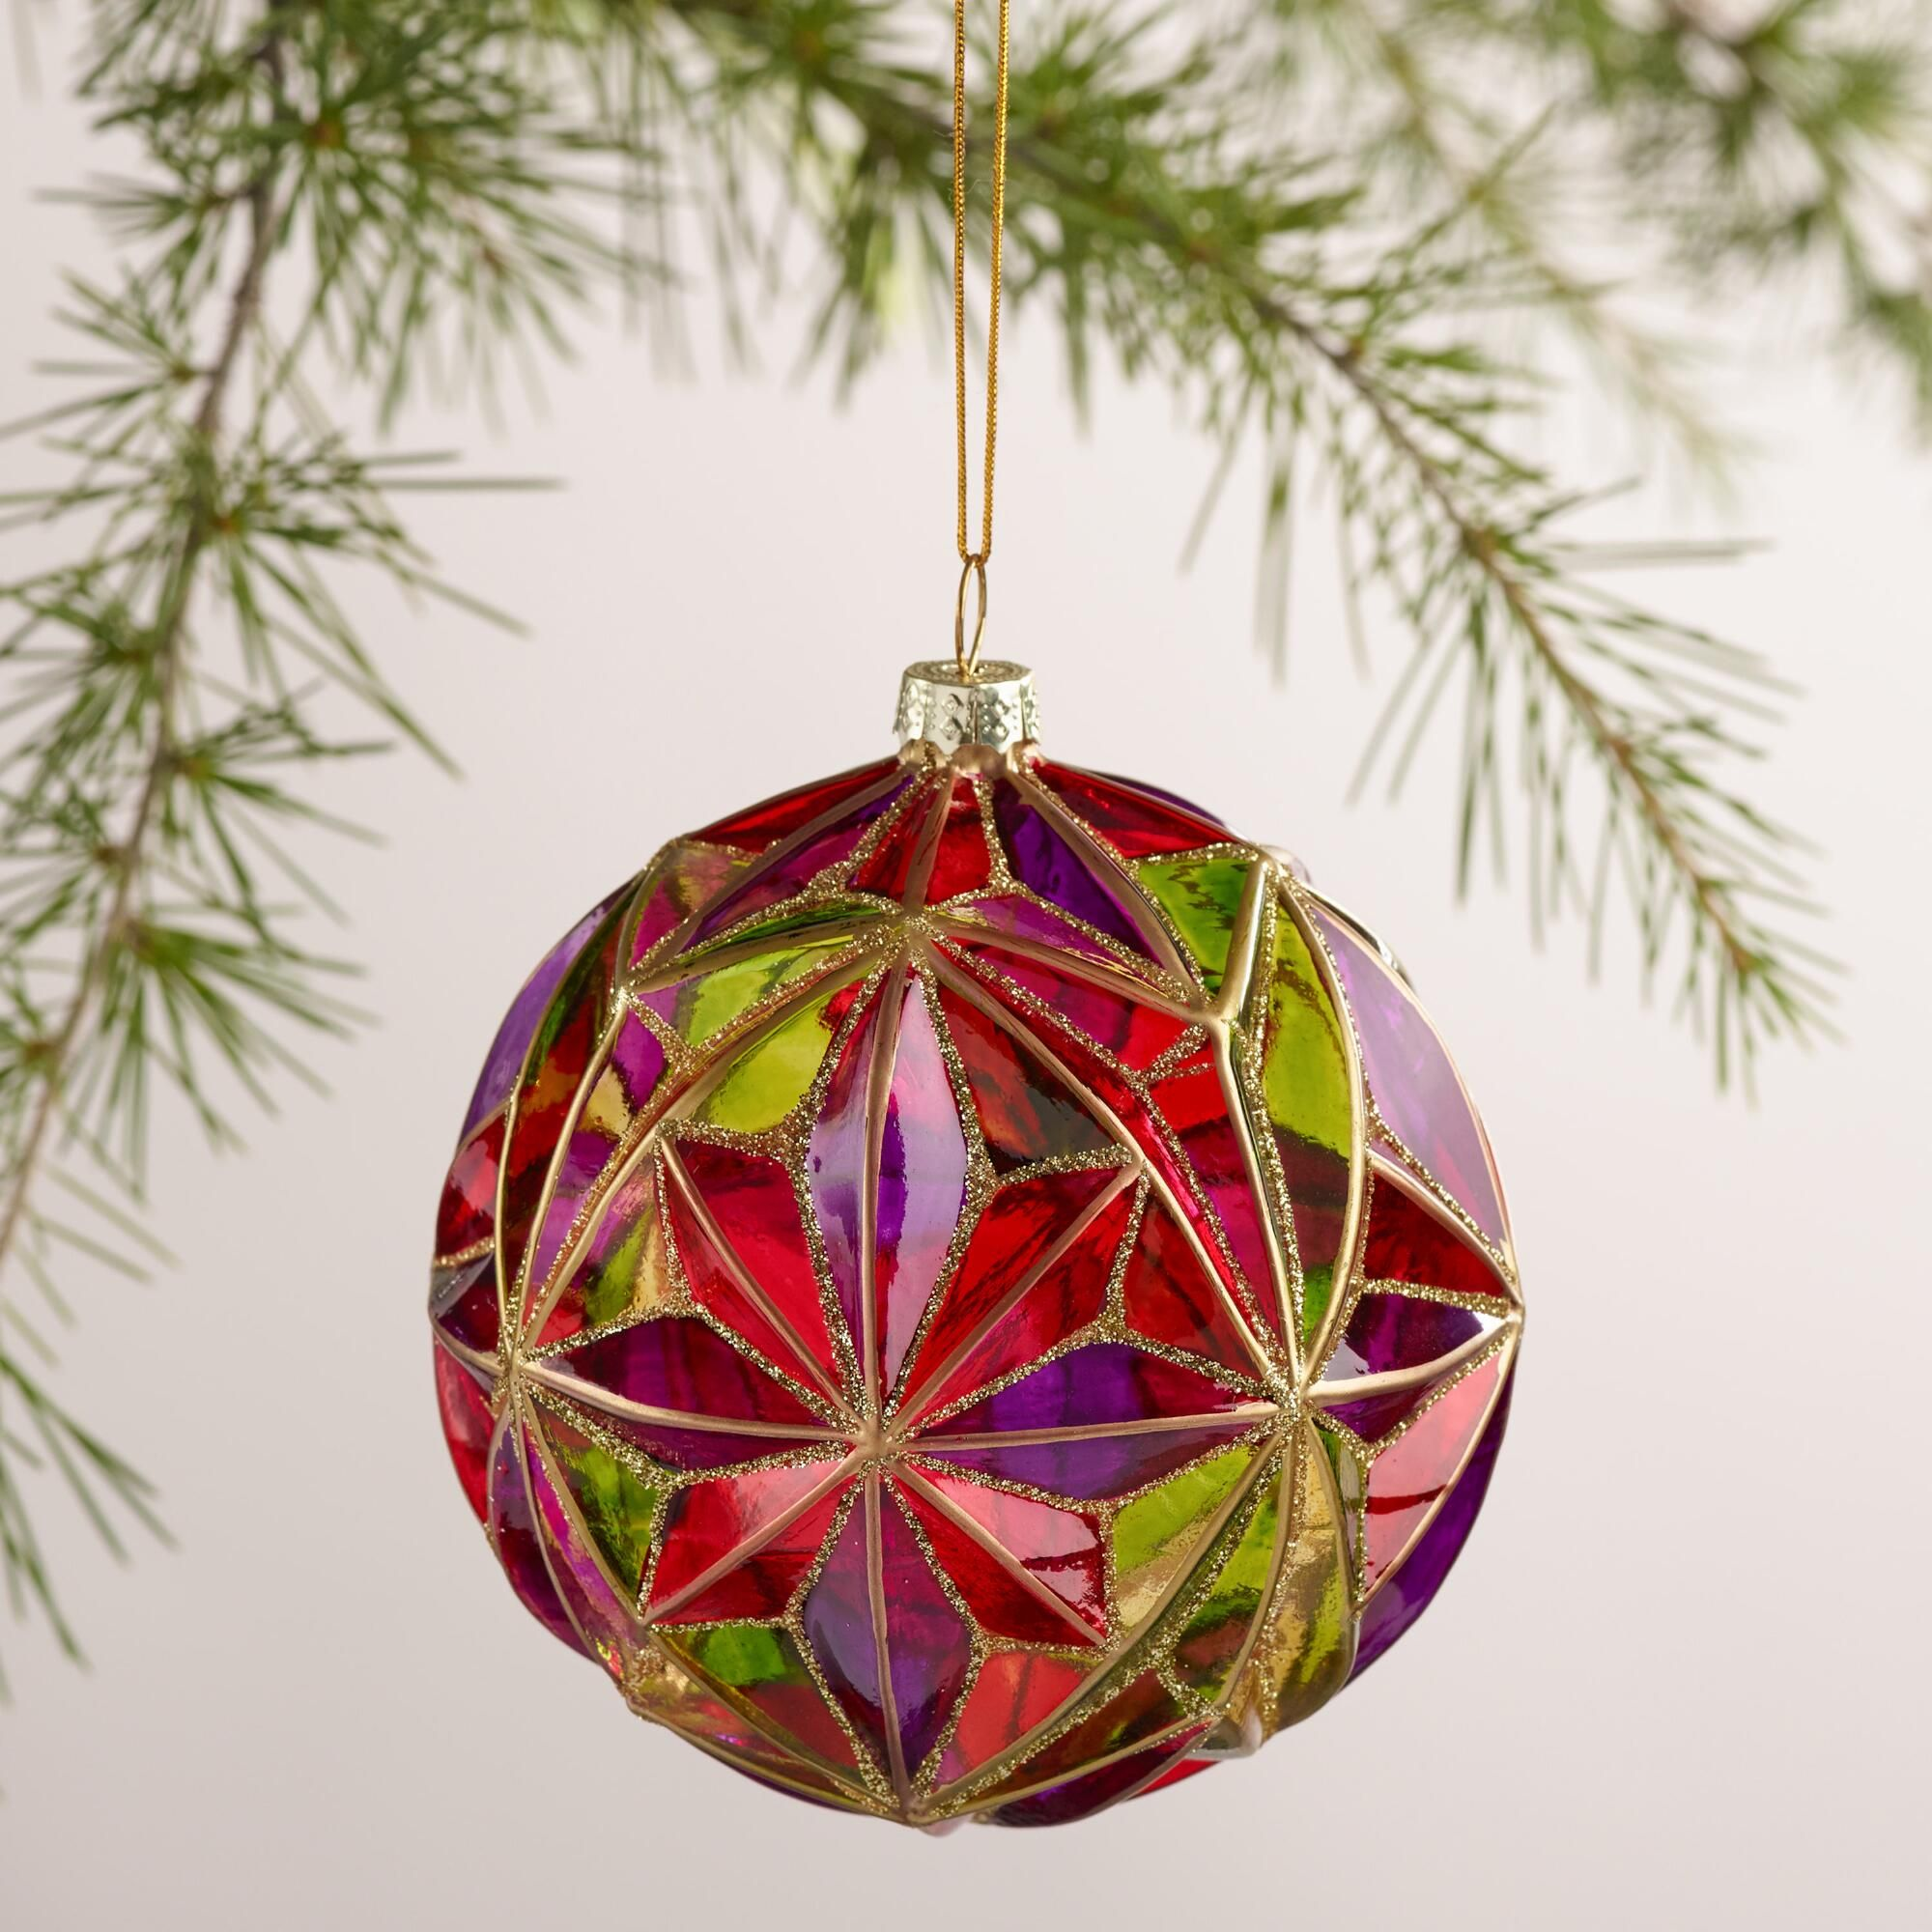 Multifaceted Glass Ball Ornament | Ornament, Glass and Holidays